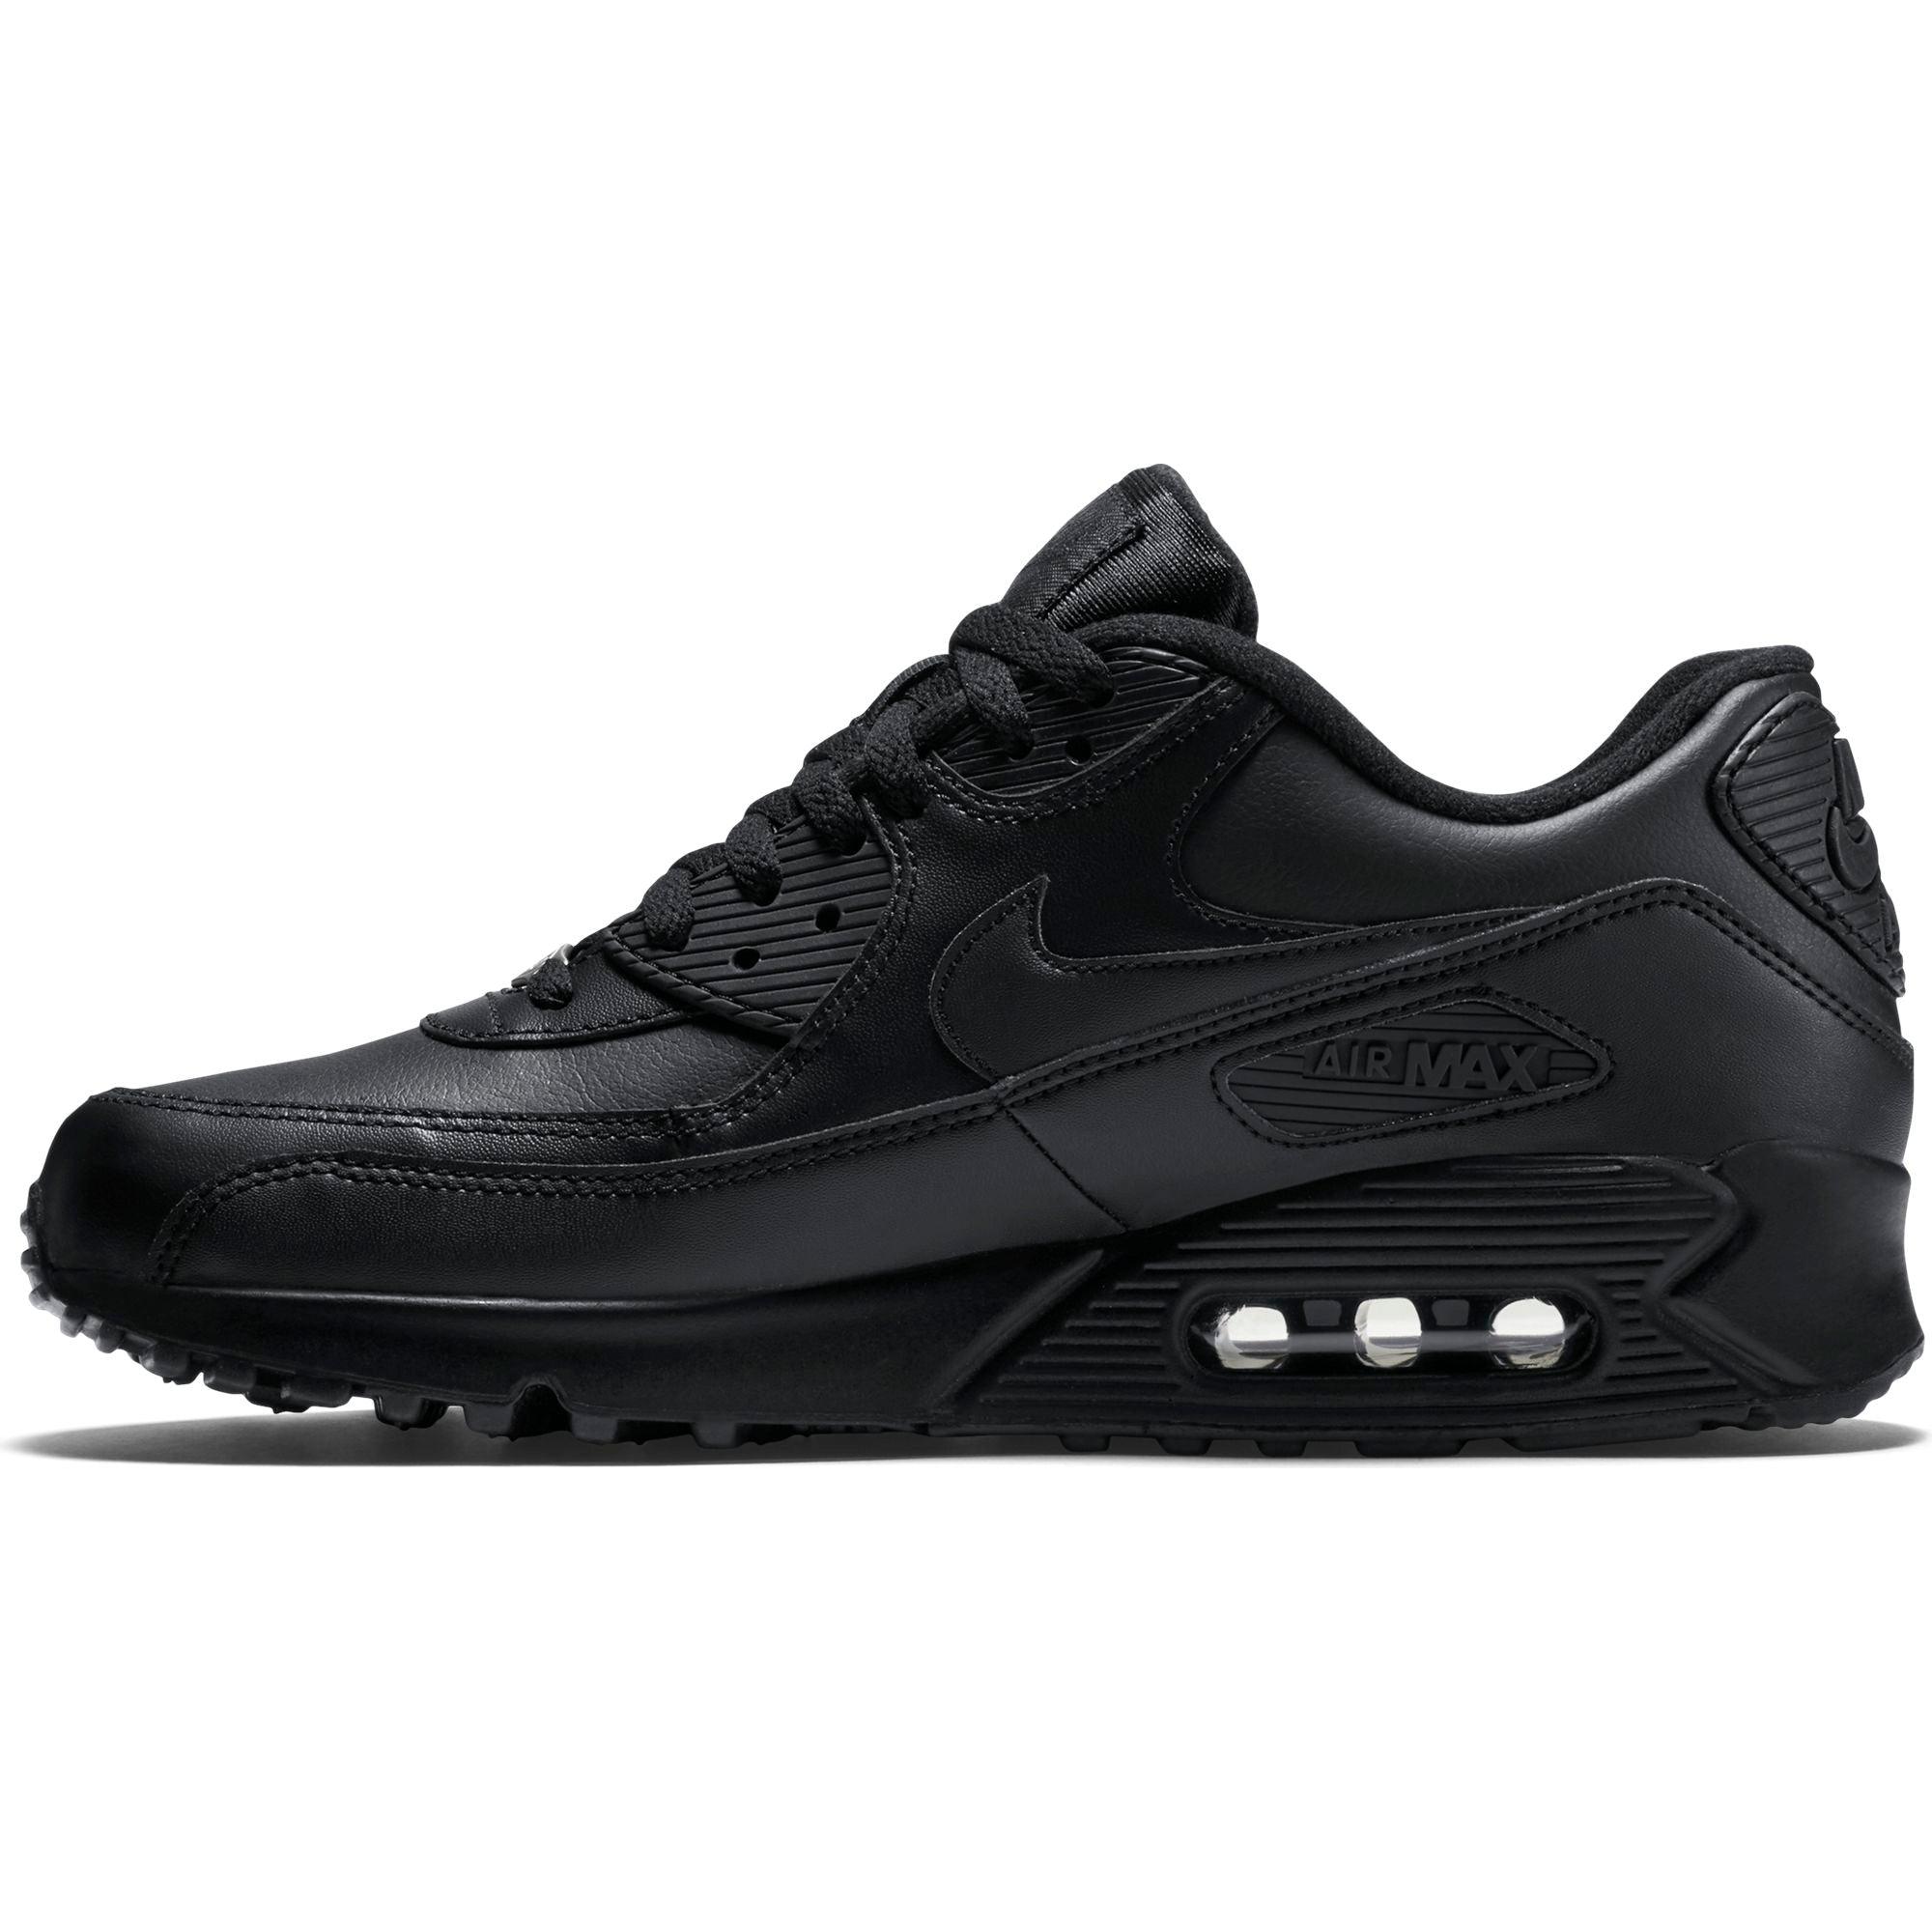 cheap for discount 0360e 1fe69 Nike Men s Air Max 90 Leather Sneakers, Black Black - First Clothing